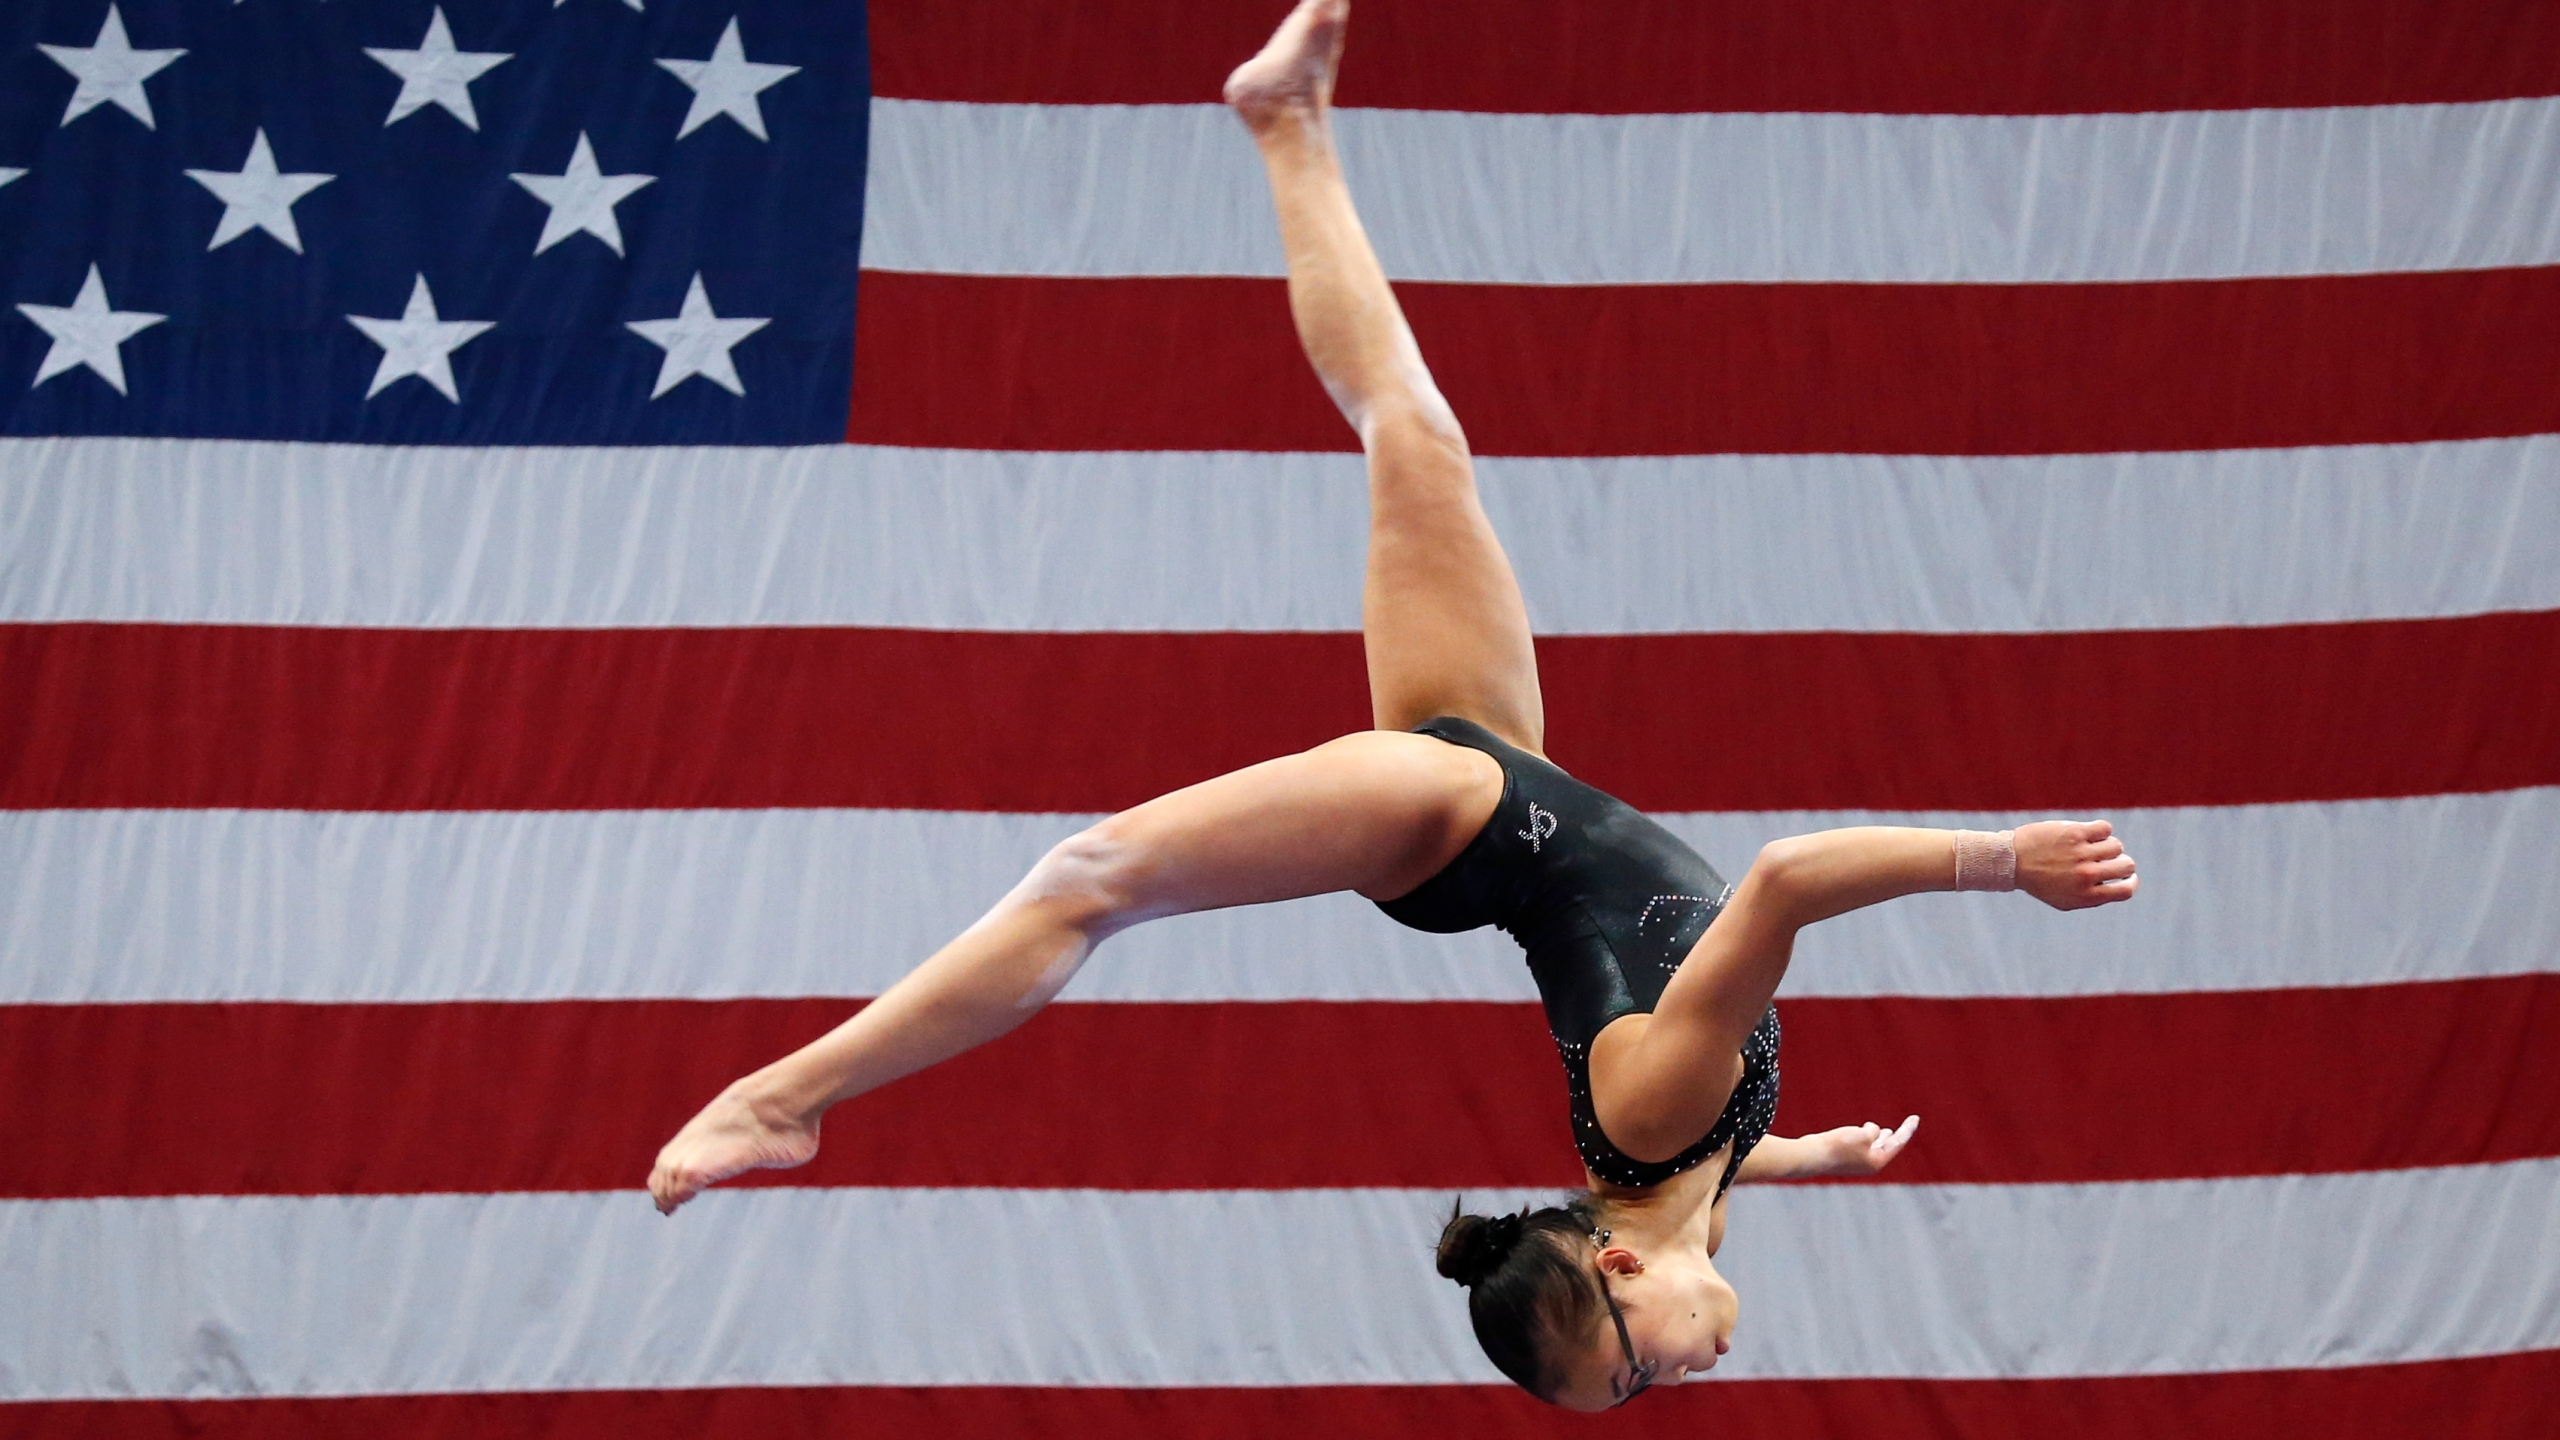 USA_Gymnastics_Small_Steps_62314-159532.jpg74506310